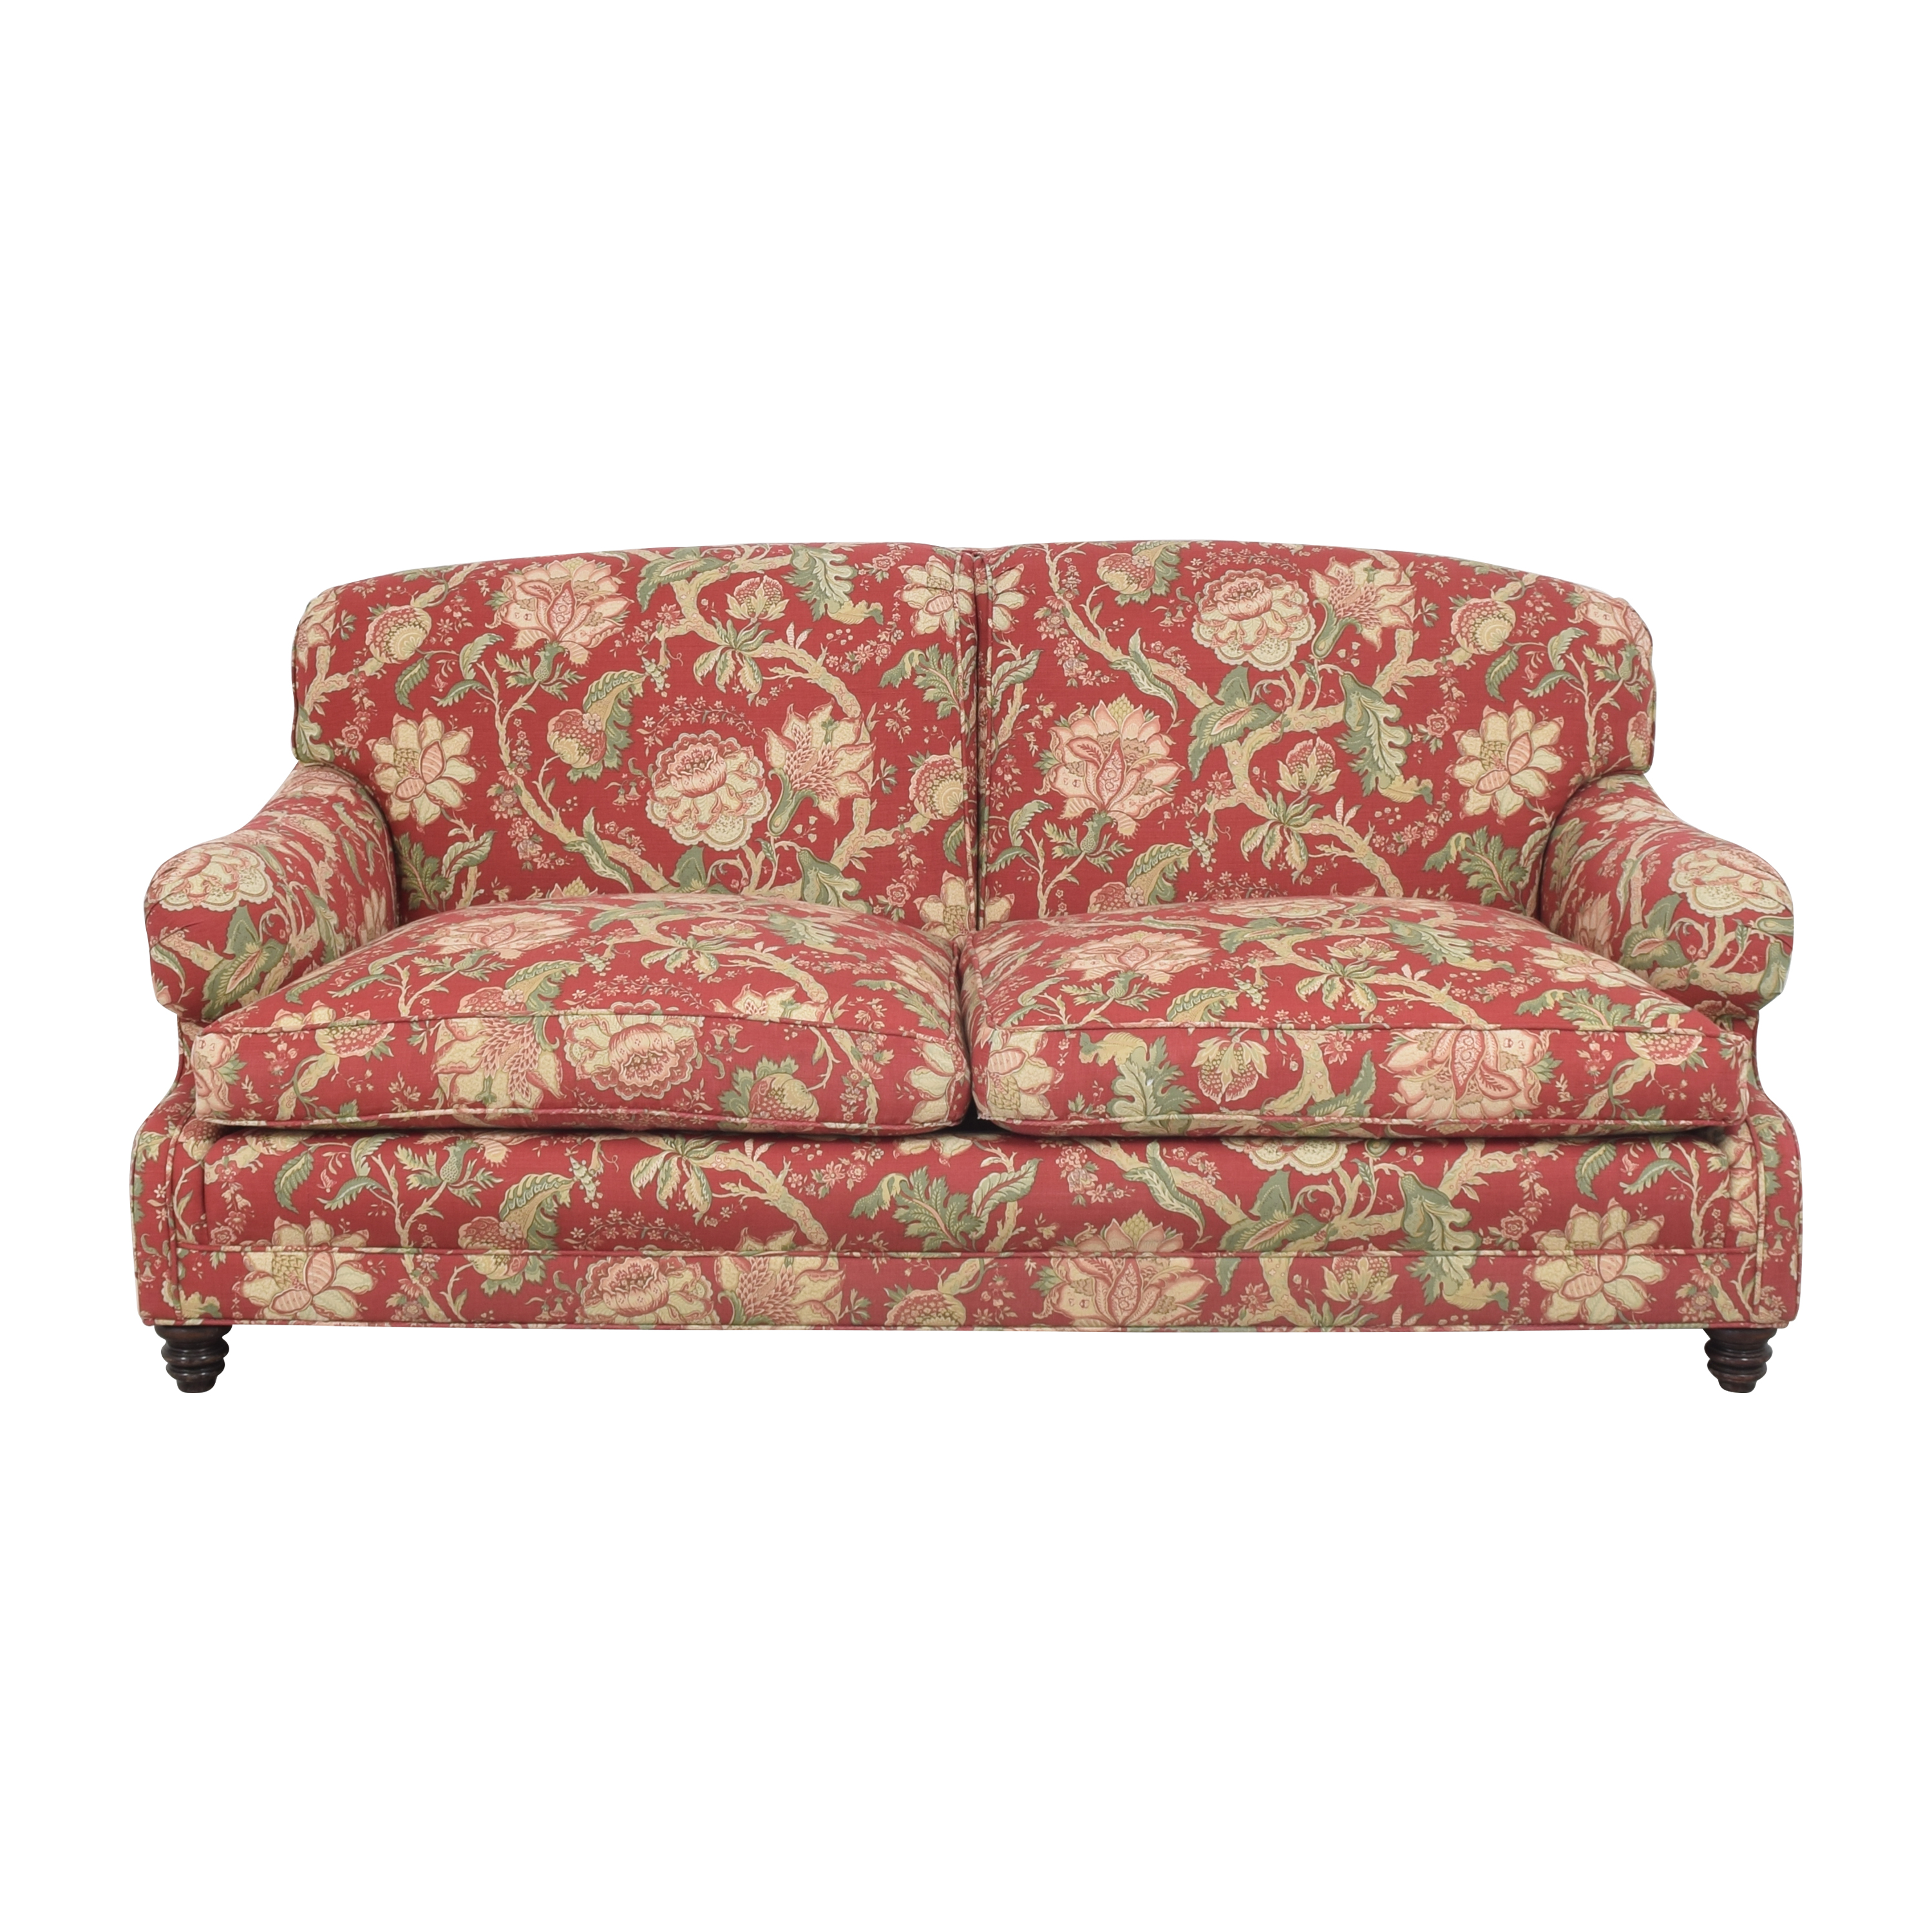 Barclay Butera Home Floral Upholstered Sofa / Classic Sofas